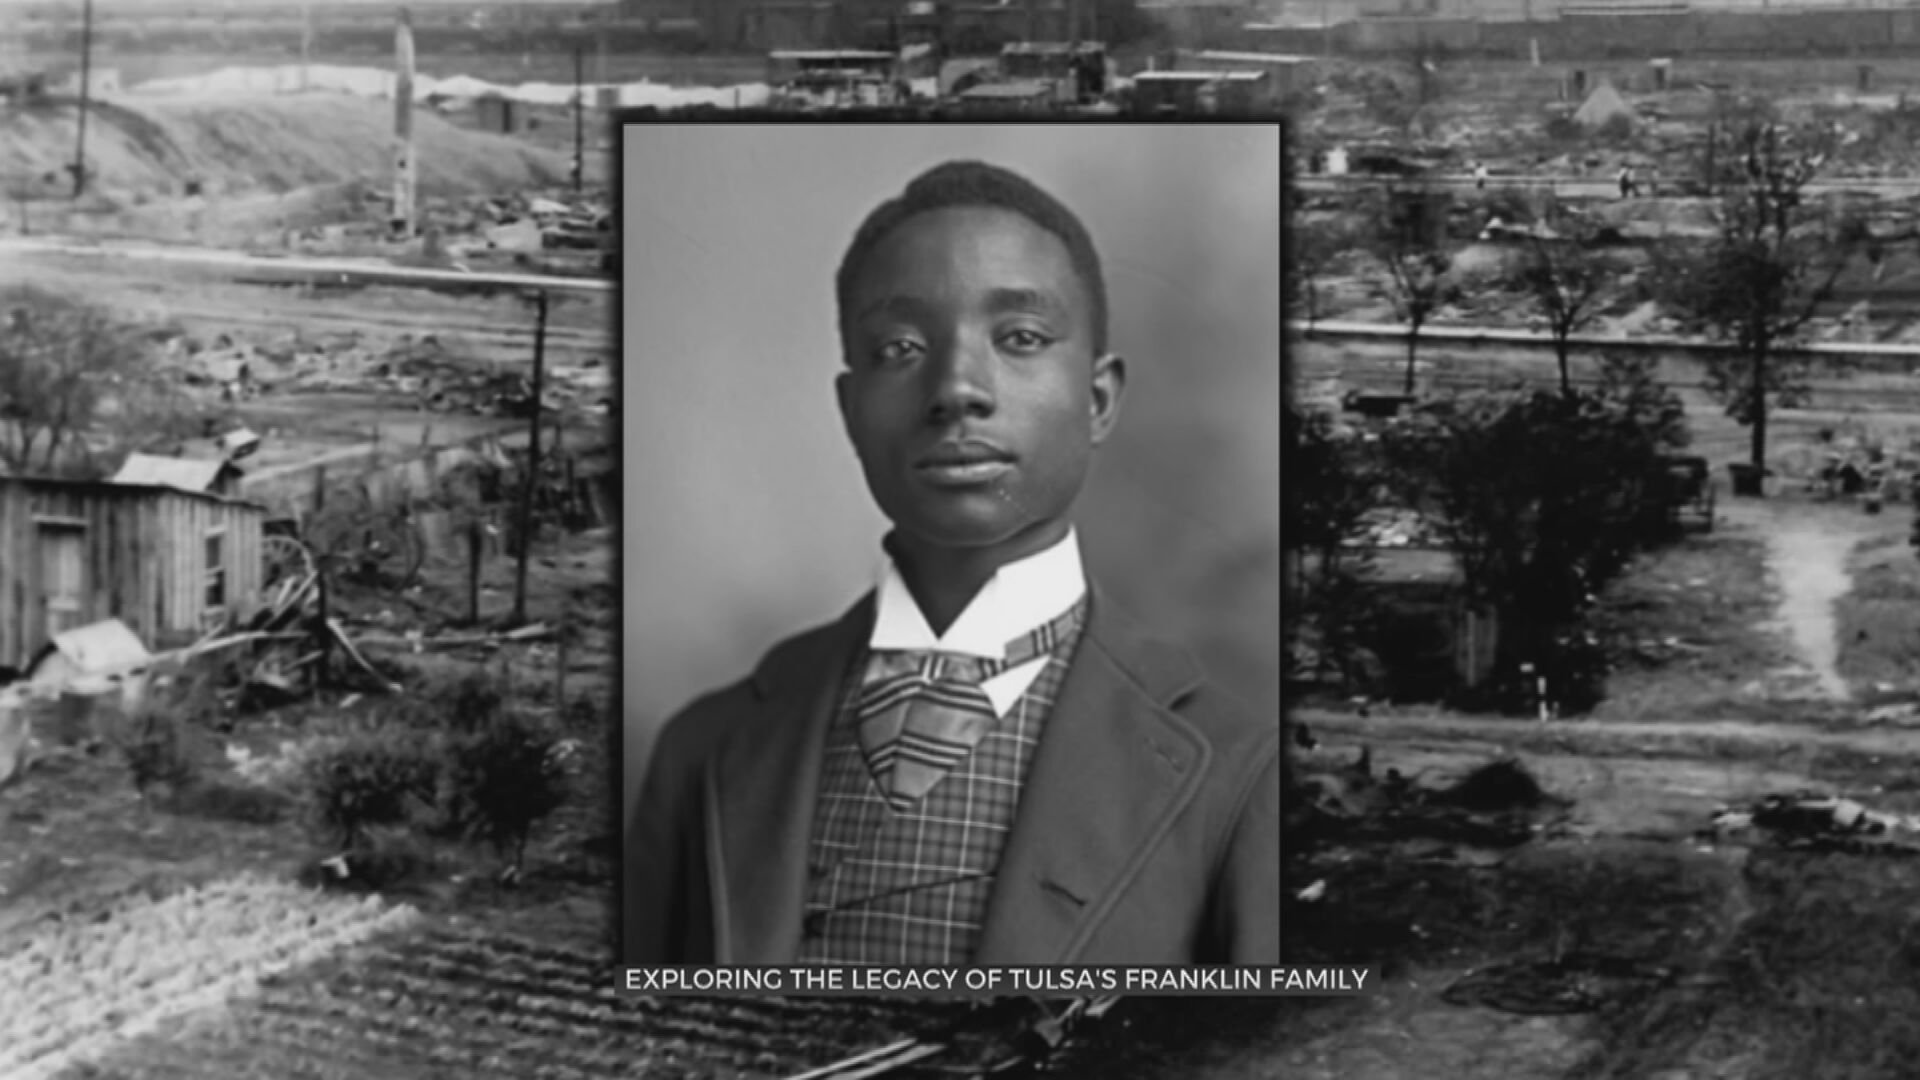 Franklin Family's Legacy In Tulsa